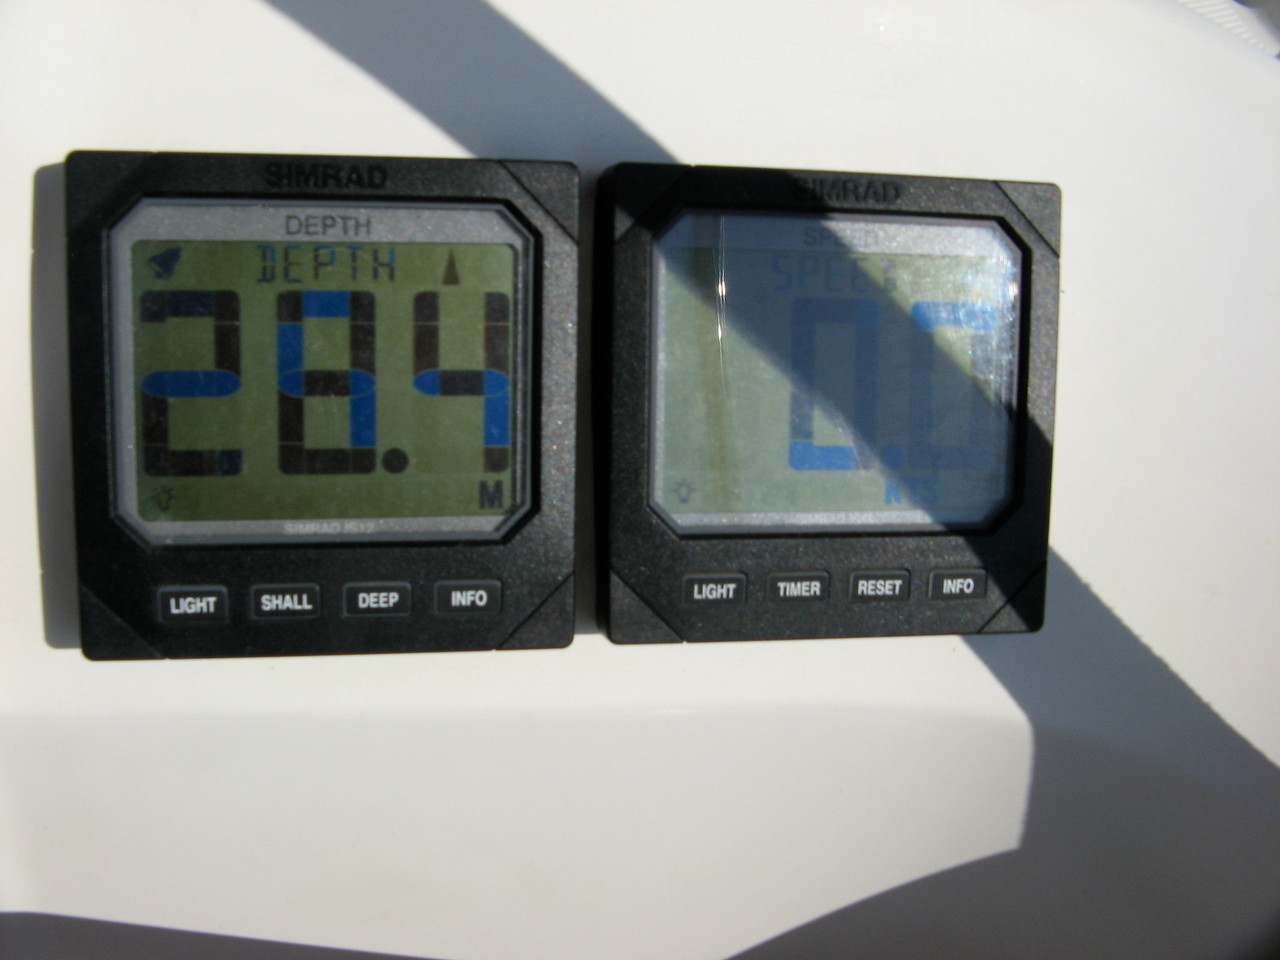 As we sail towards Kalymnos, the water depth is just over 90 feet.